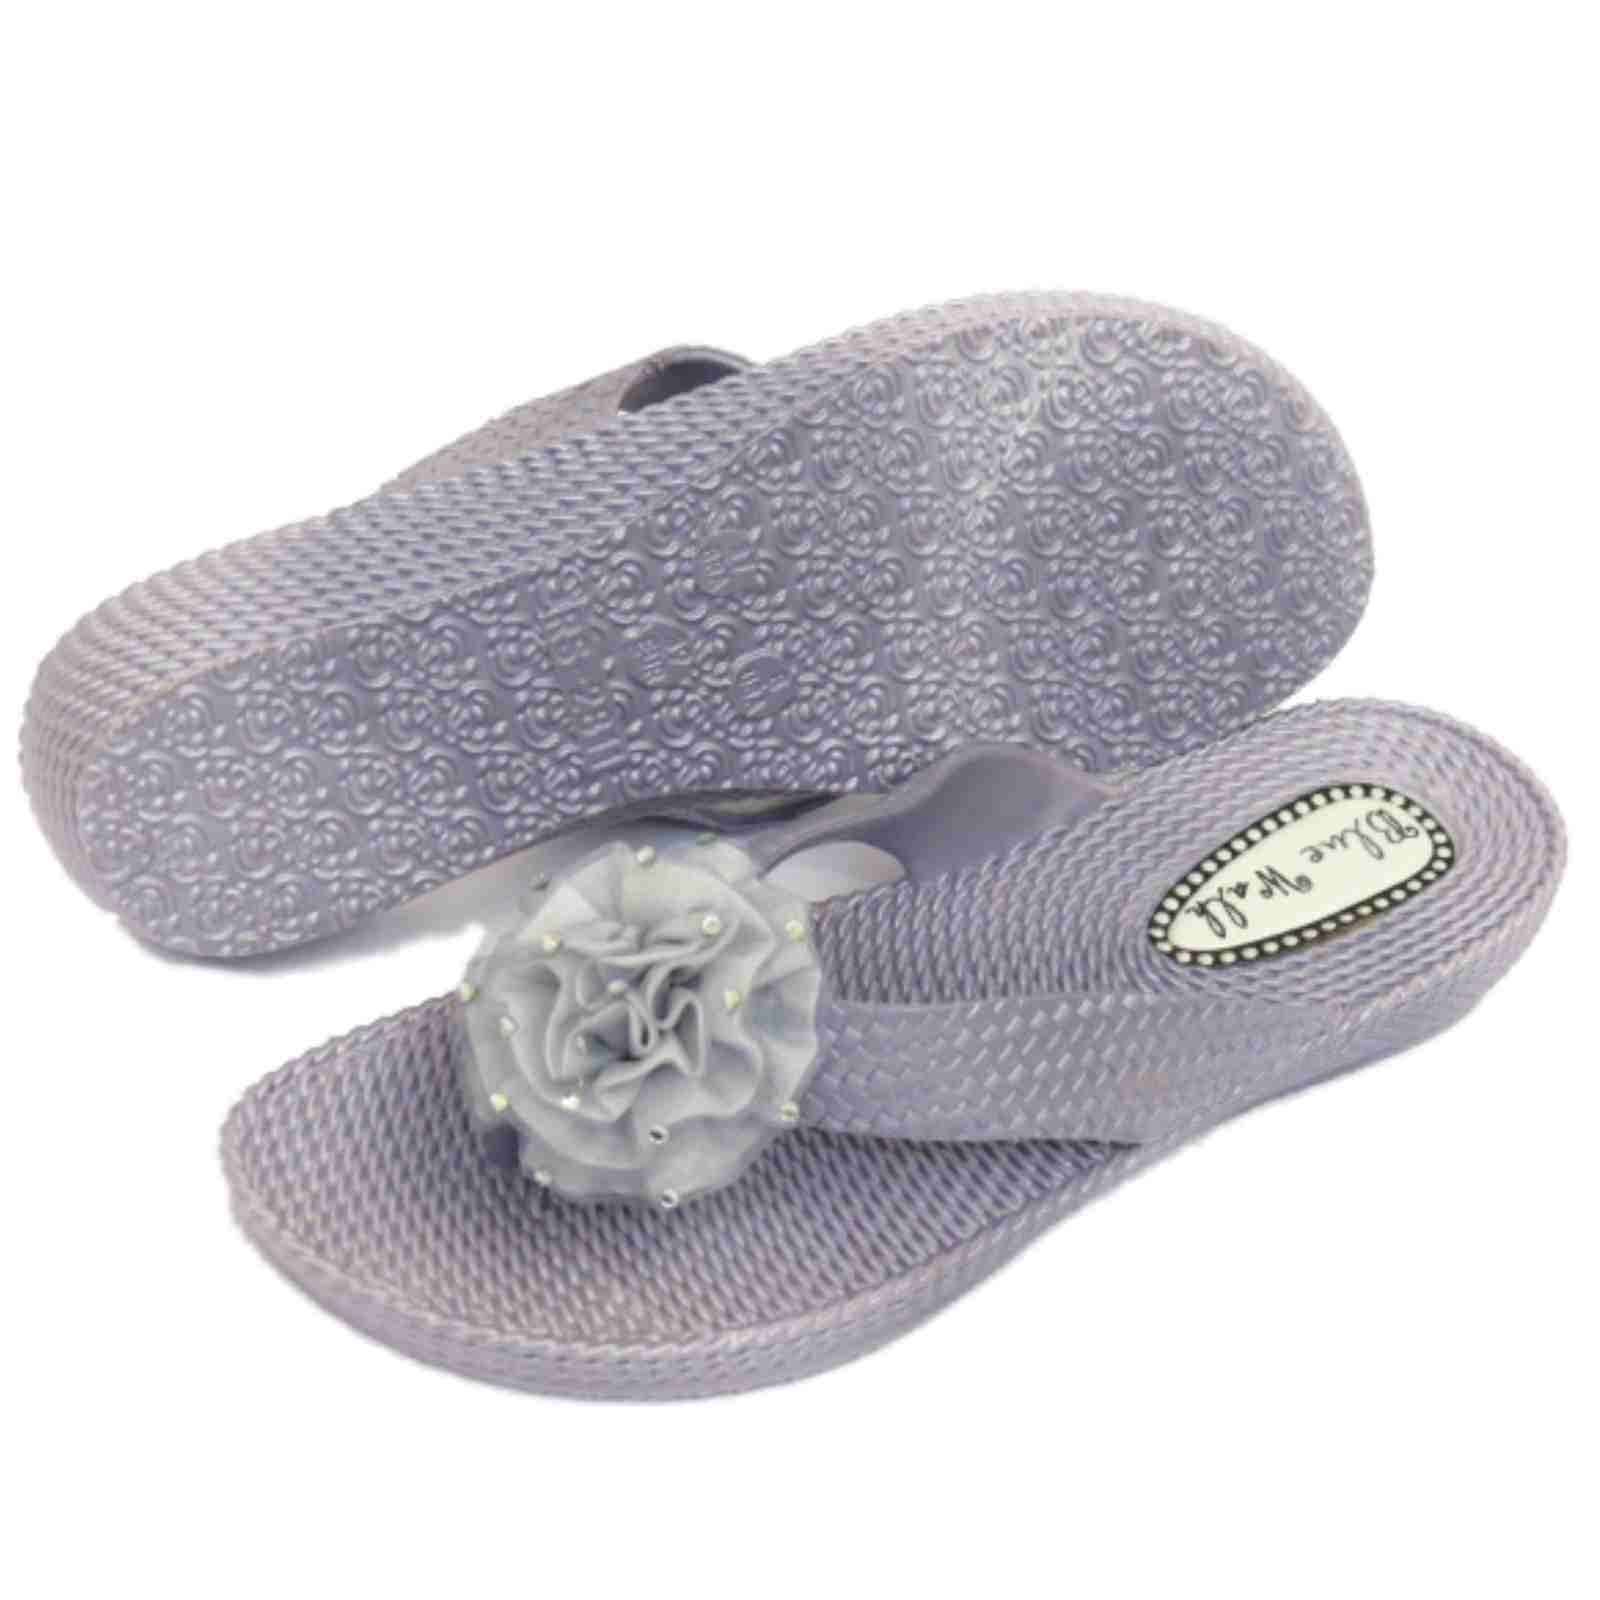 c29d6336bf085d Sentinel WOMENS FLAT TOE-POST SILVER SANDALS FLIP-FLOP BEACH SLIP-ON JELLY  SHOES